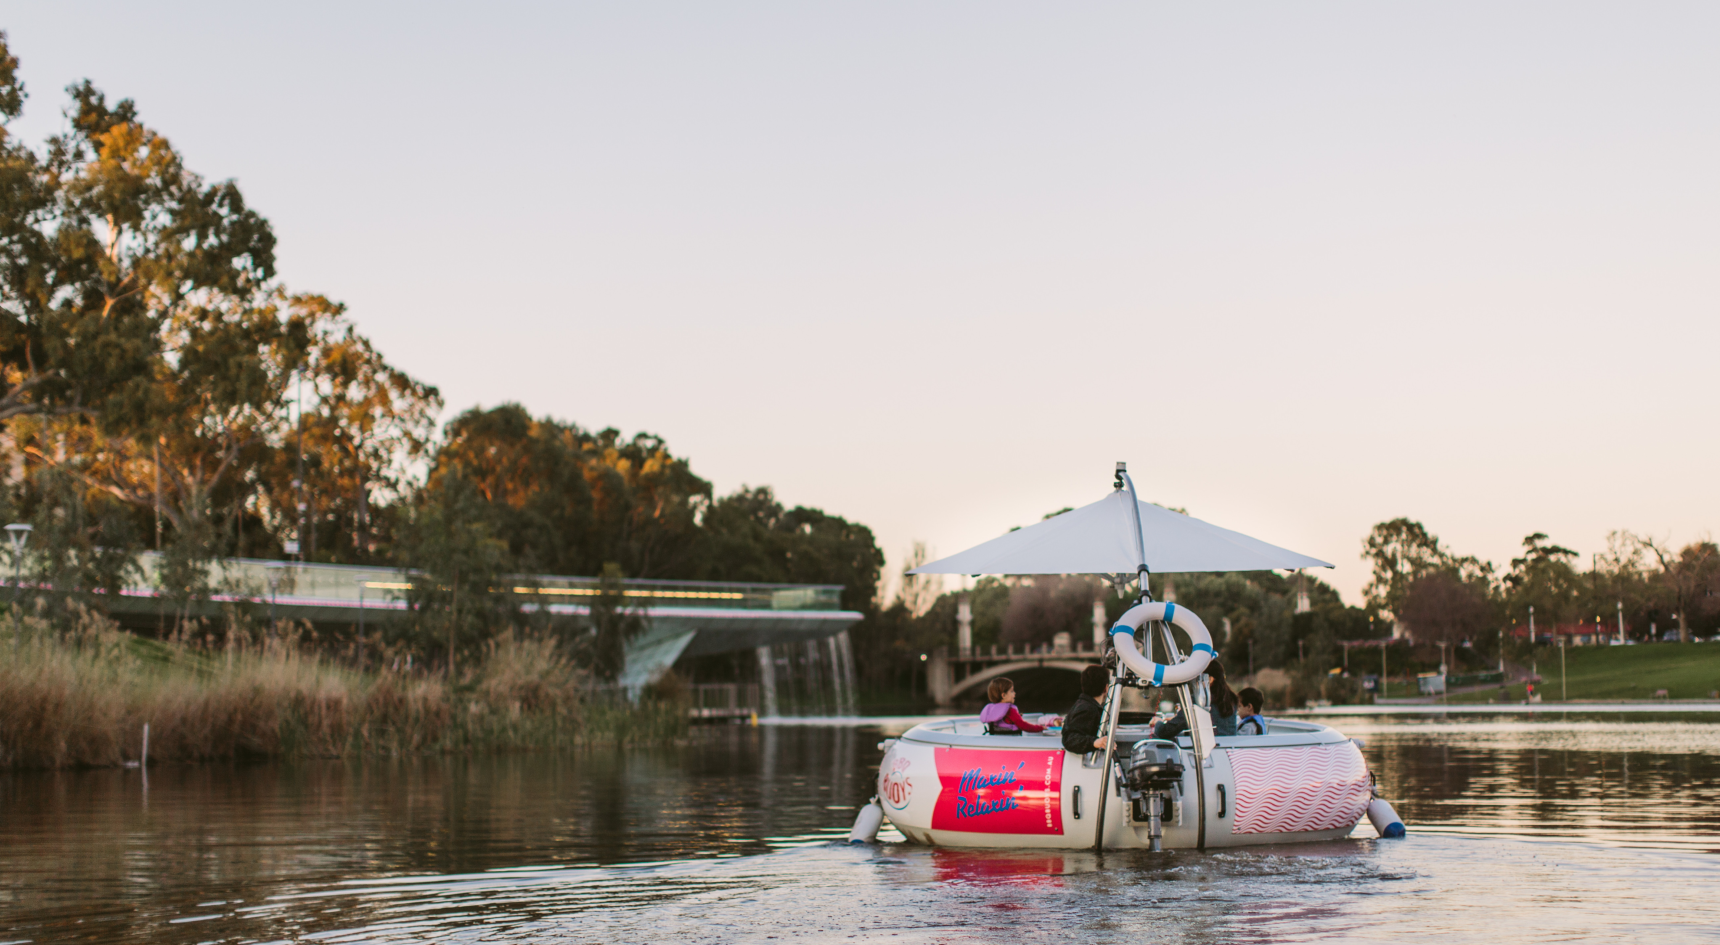 Cruise along the River Torrens with BBQ buoys. Image: SATC/Jessica Clark